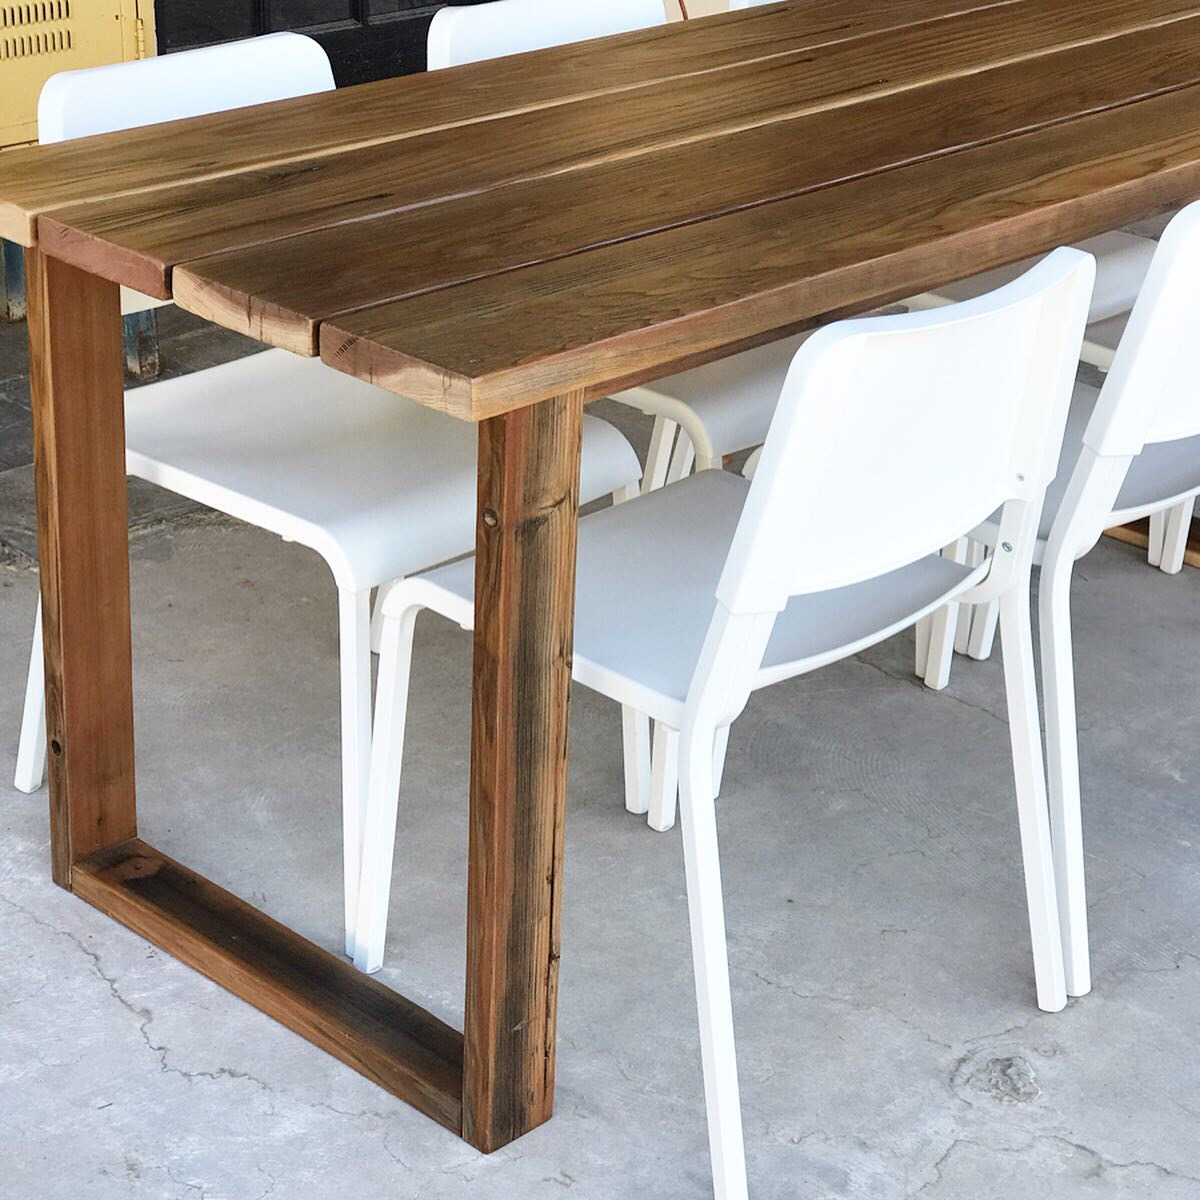 Diy Simple Outdoor Dining Table The Awesome Orange